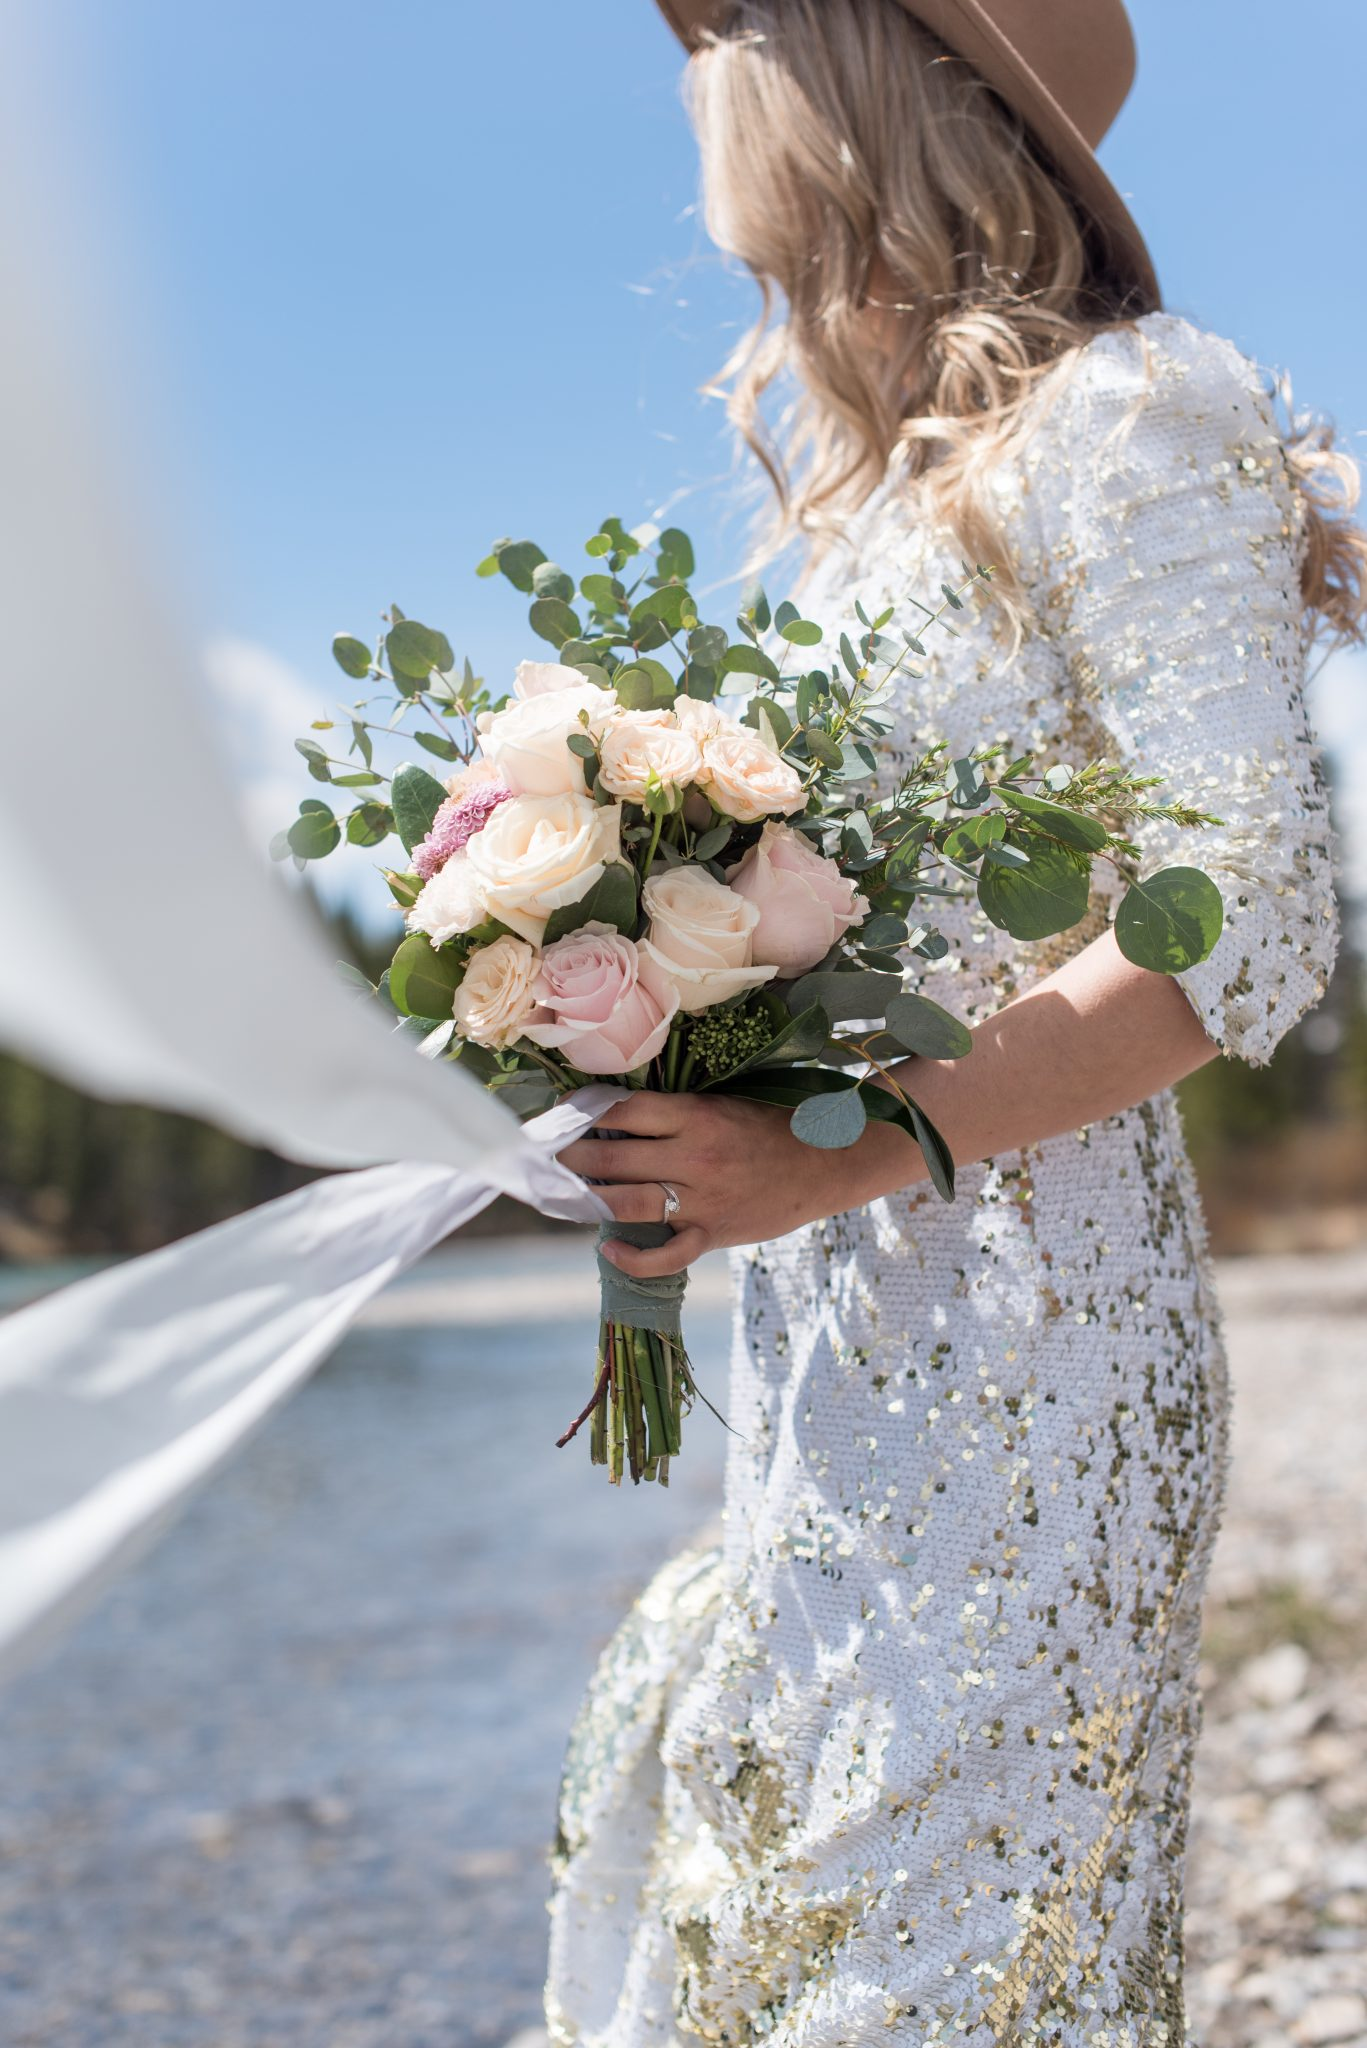 Gold sequin wedding dress against the blue sky of the Canadian Rocky Mountains